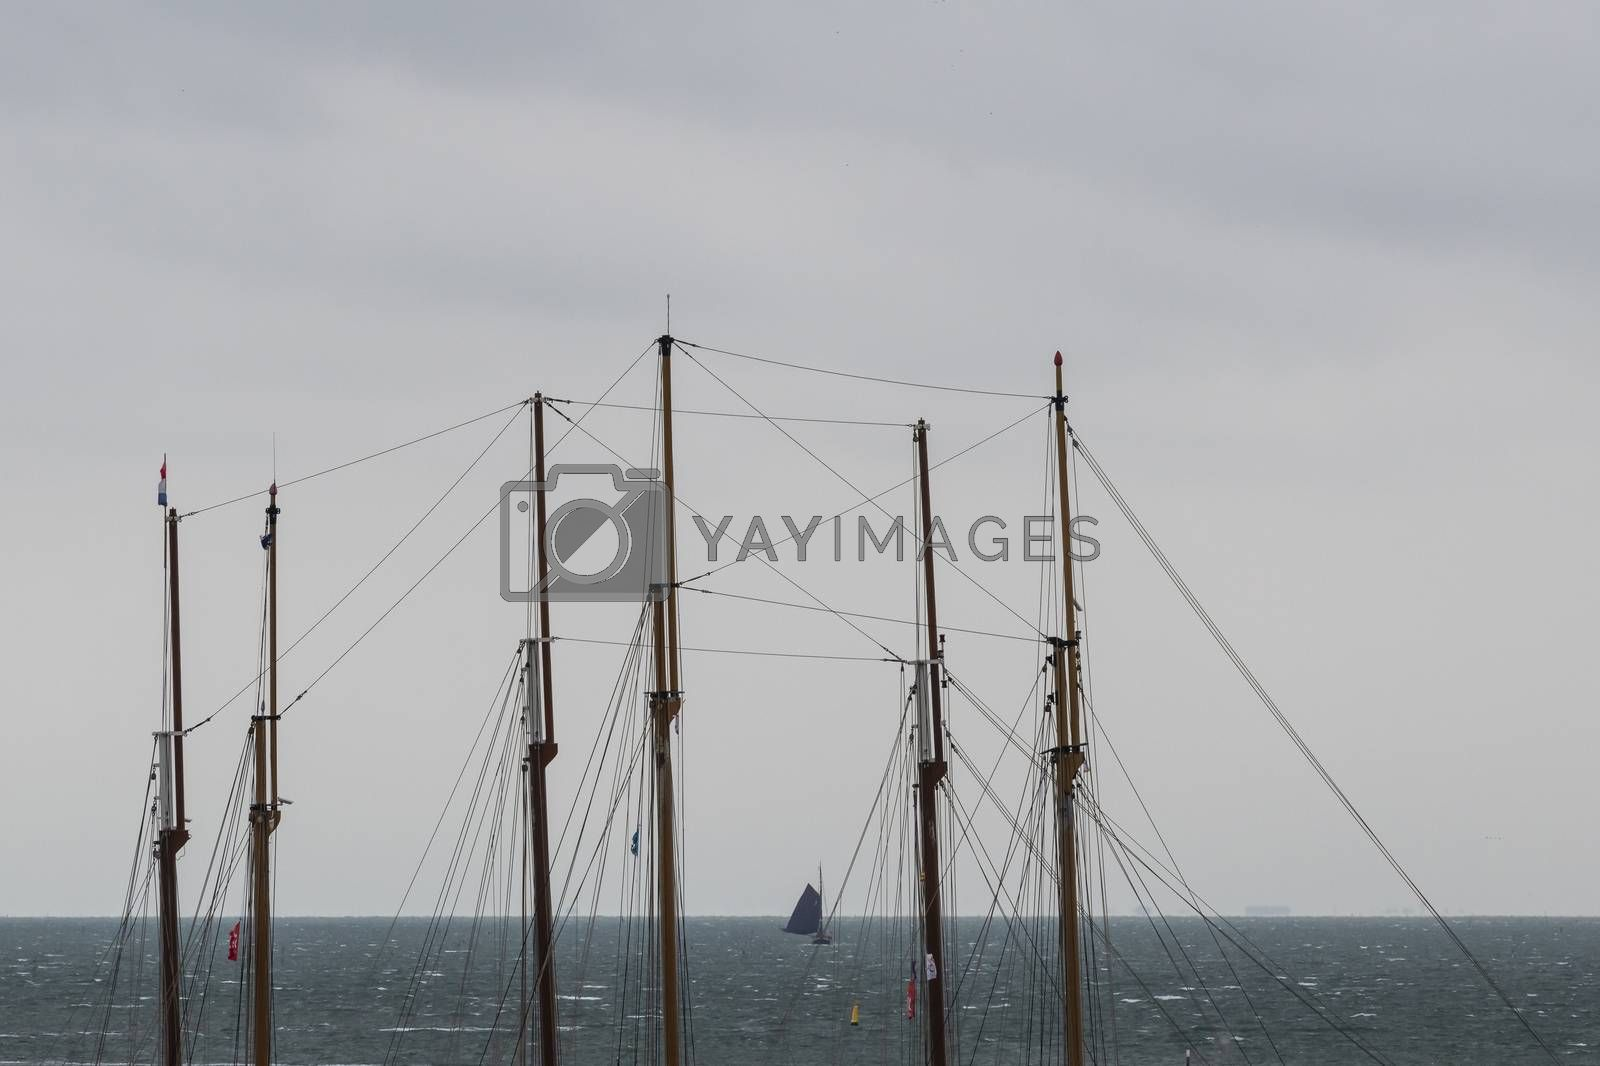 Sailboat at sea seen through the masts of two three-masted sailb by Tofotografie